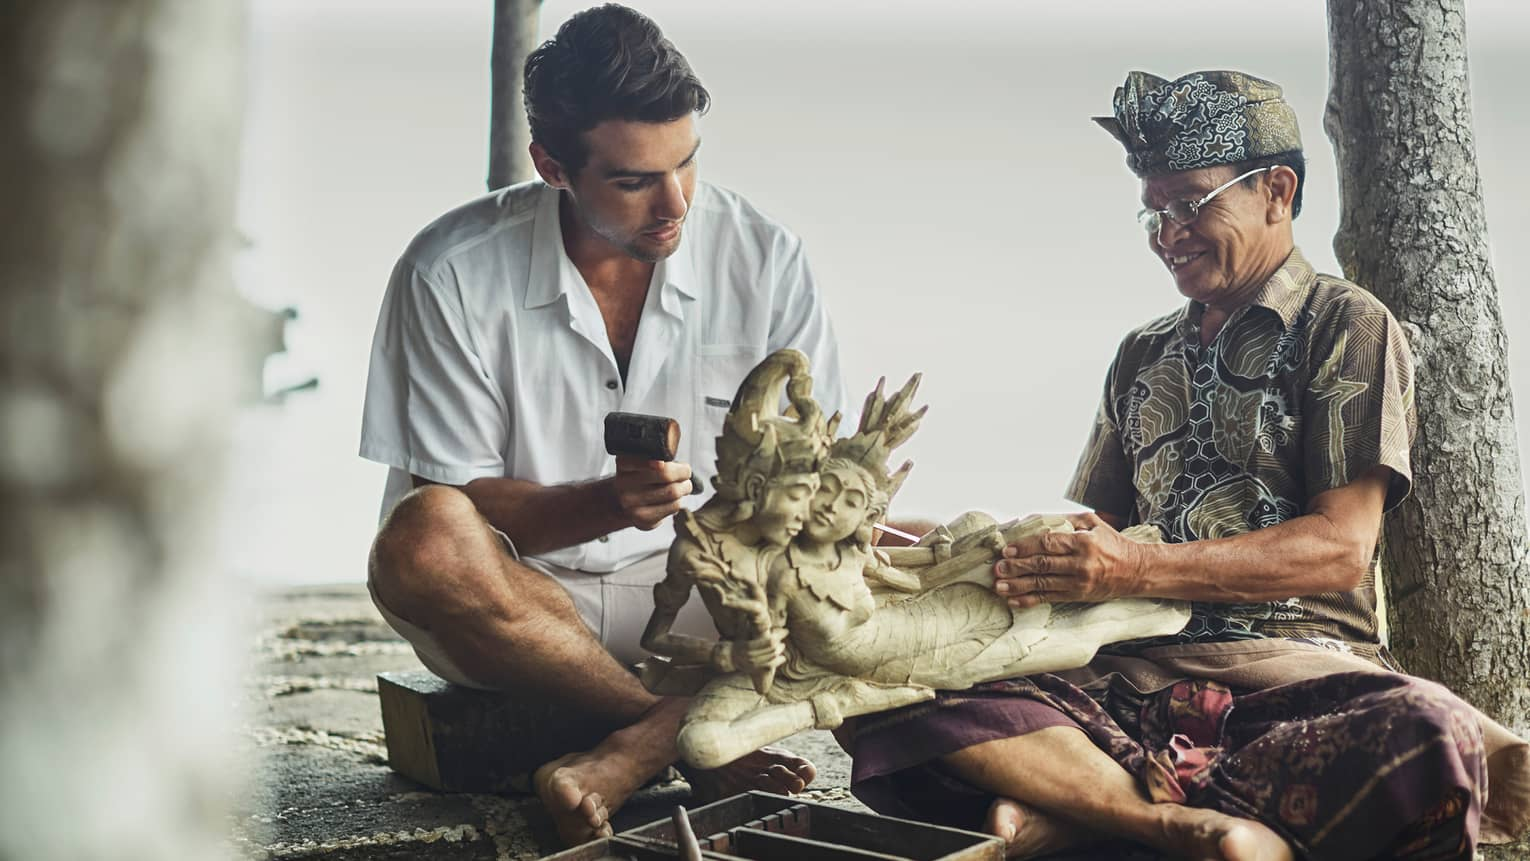 Man in white shirt sitting on mat with man in headdress and native costume holding carving